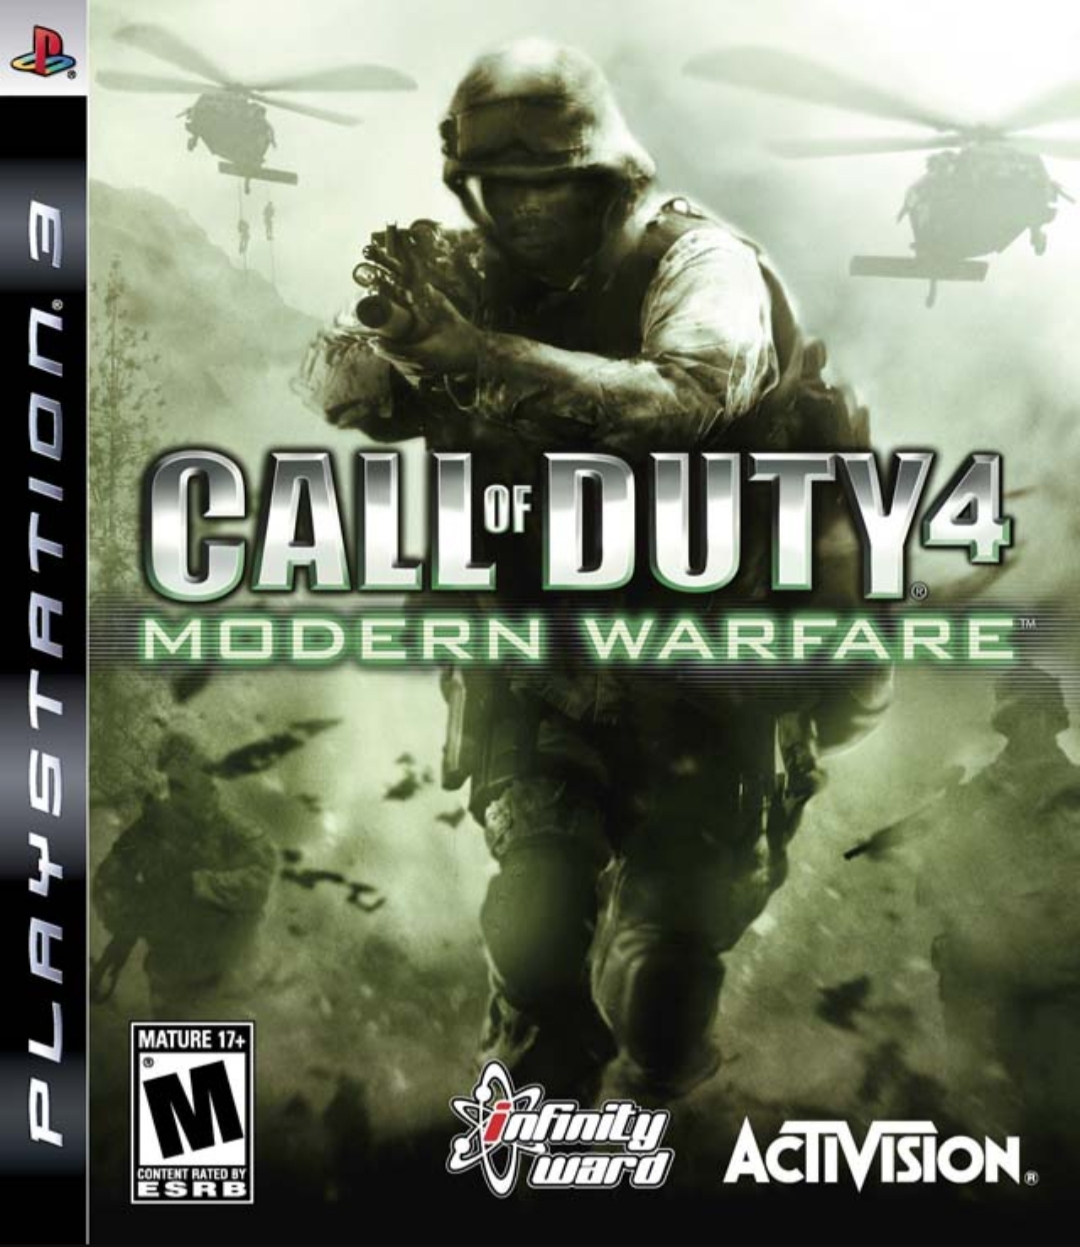 Call of Duty 4: Modern Warfare (Video Game 2007) - IMDb